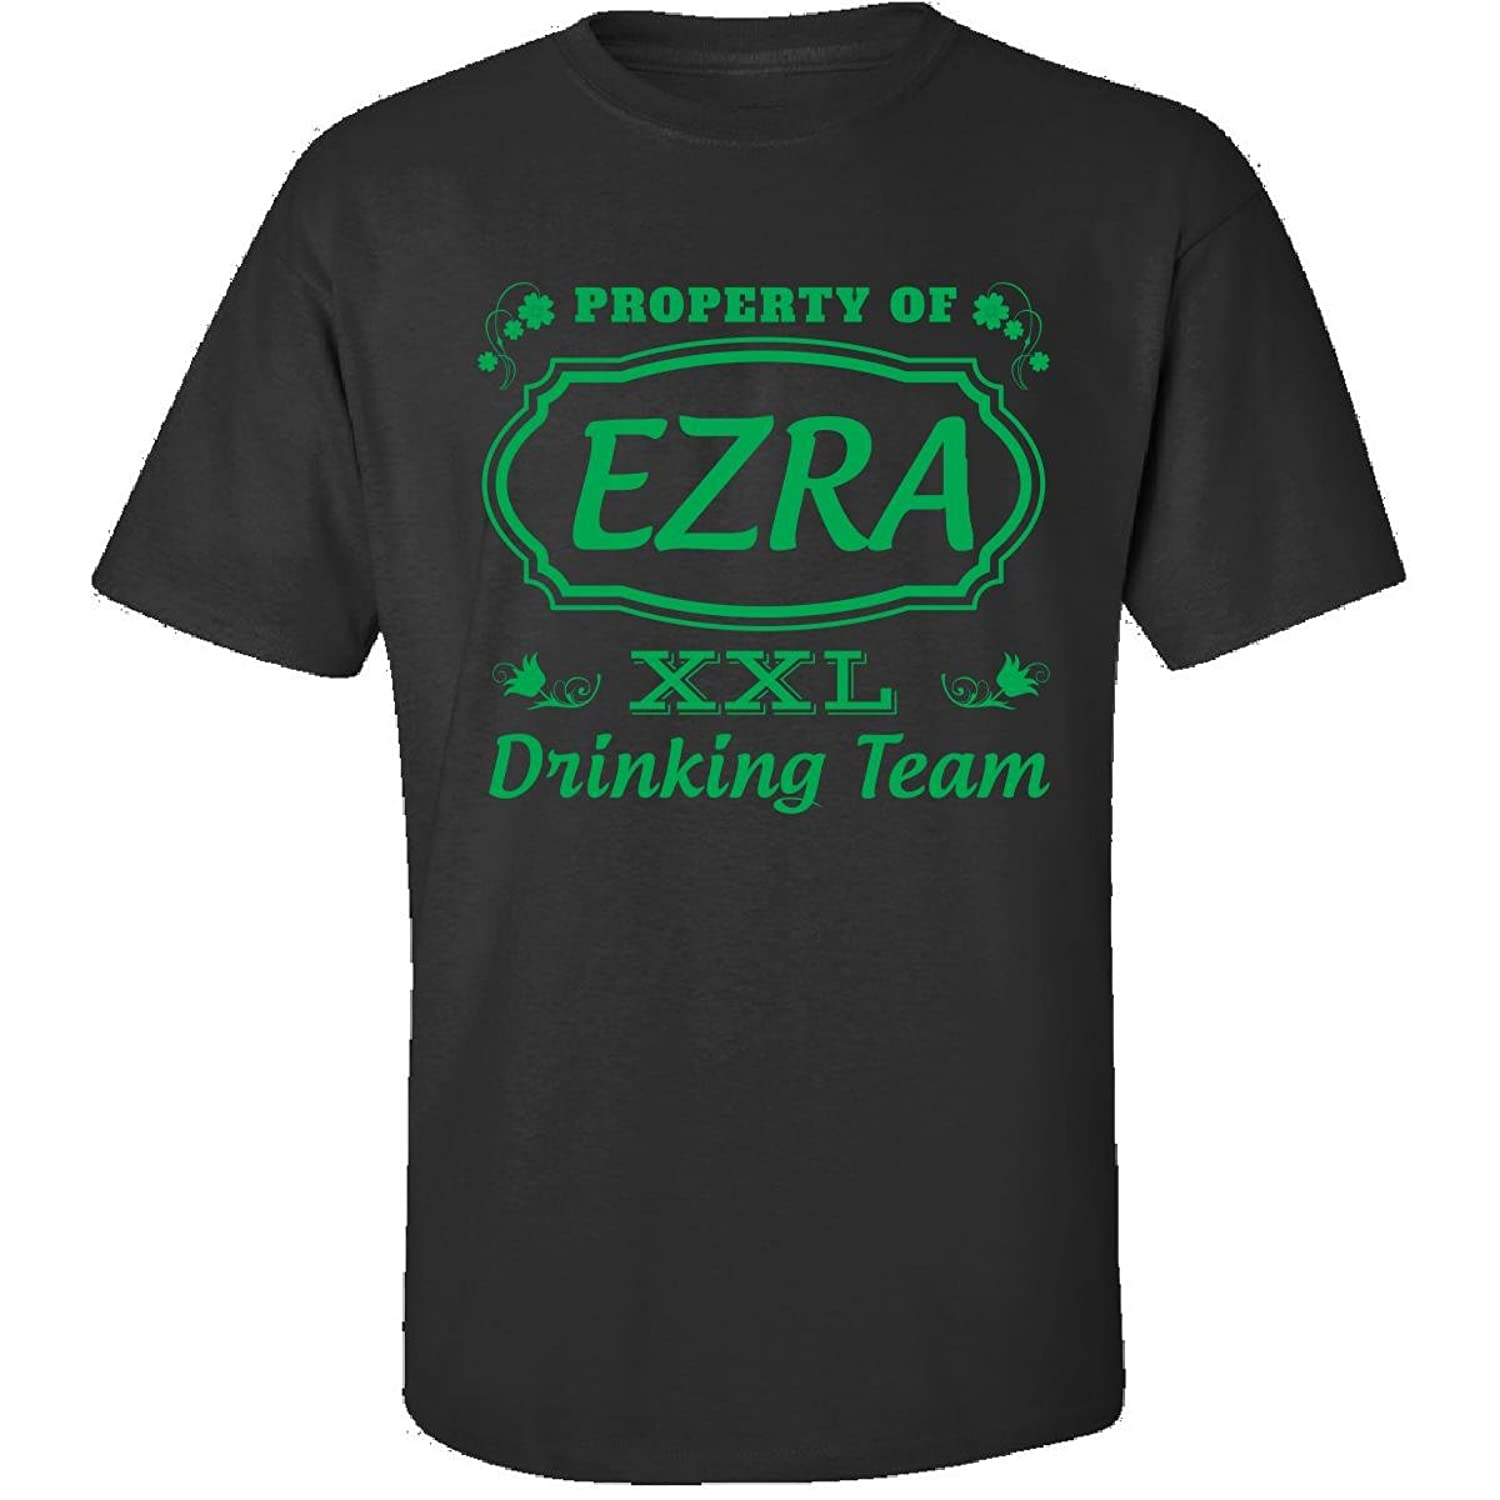 Property Of Ezra St Patrick Day Beer Drinking Team - Adult Shirt